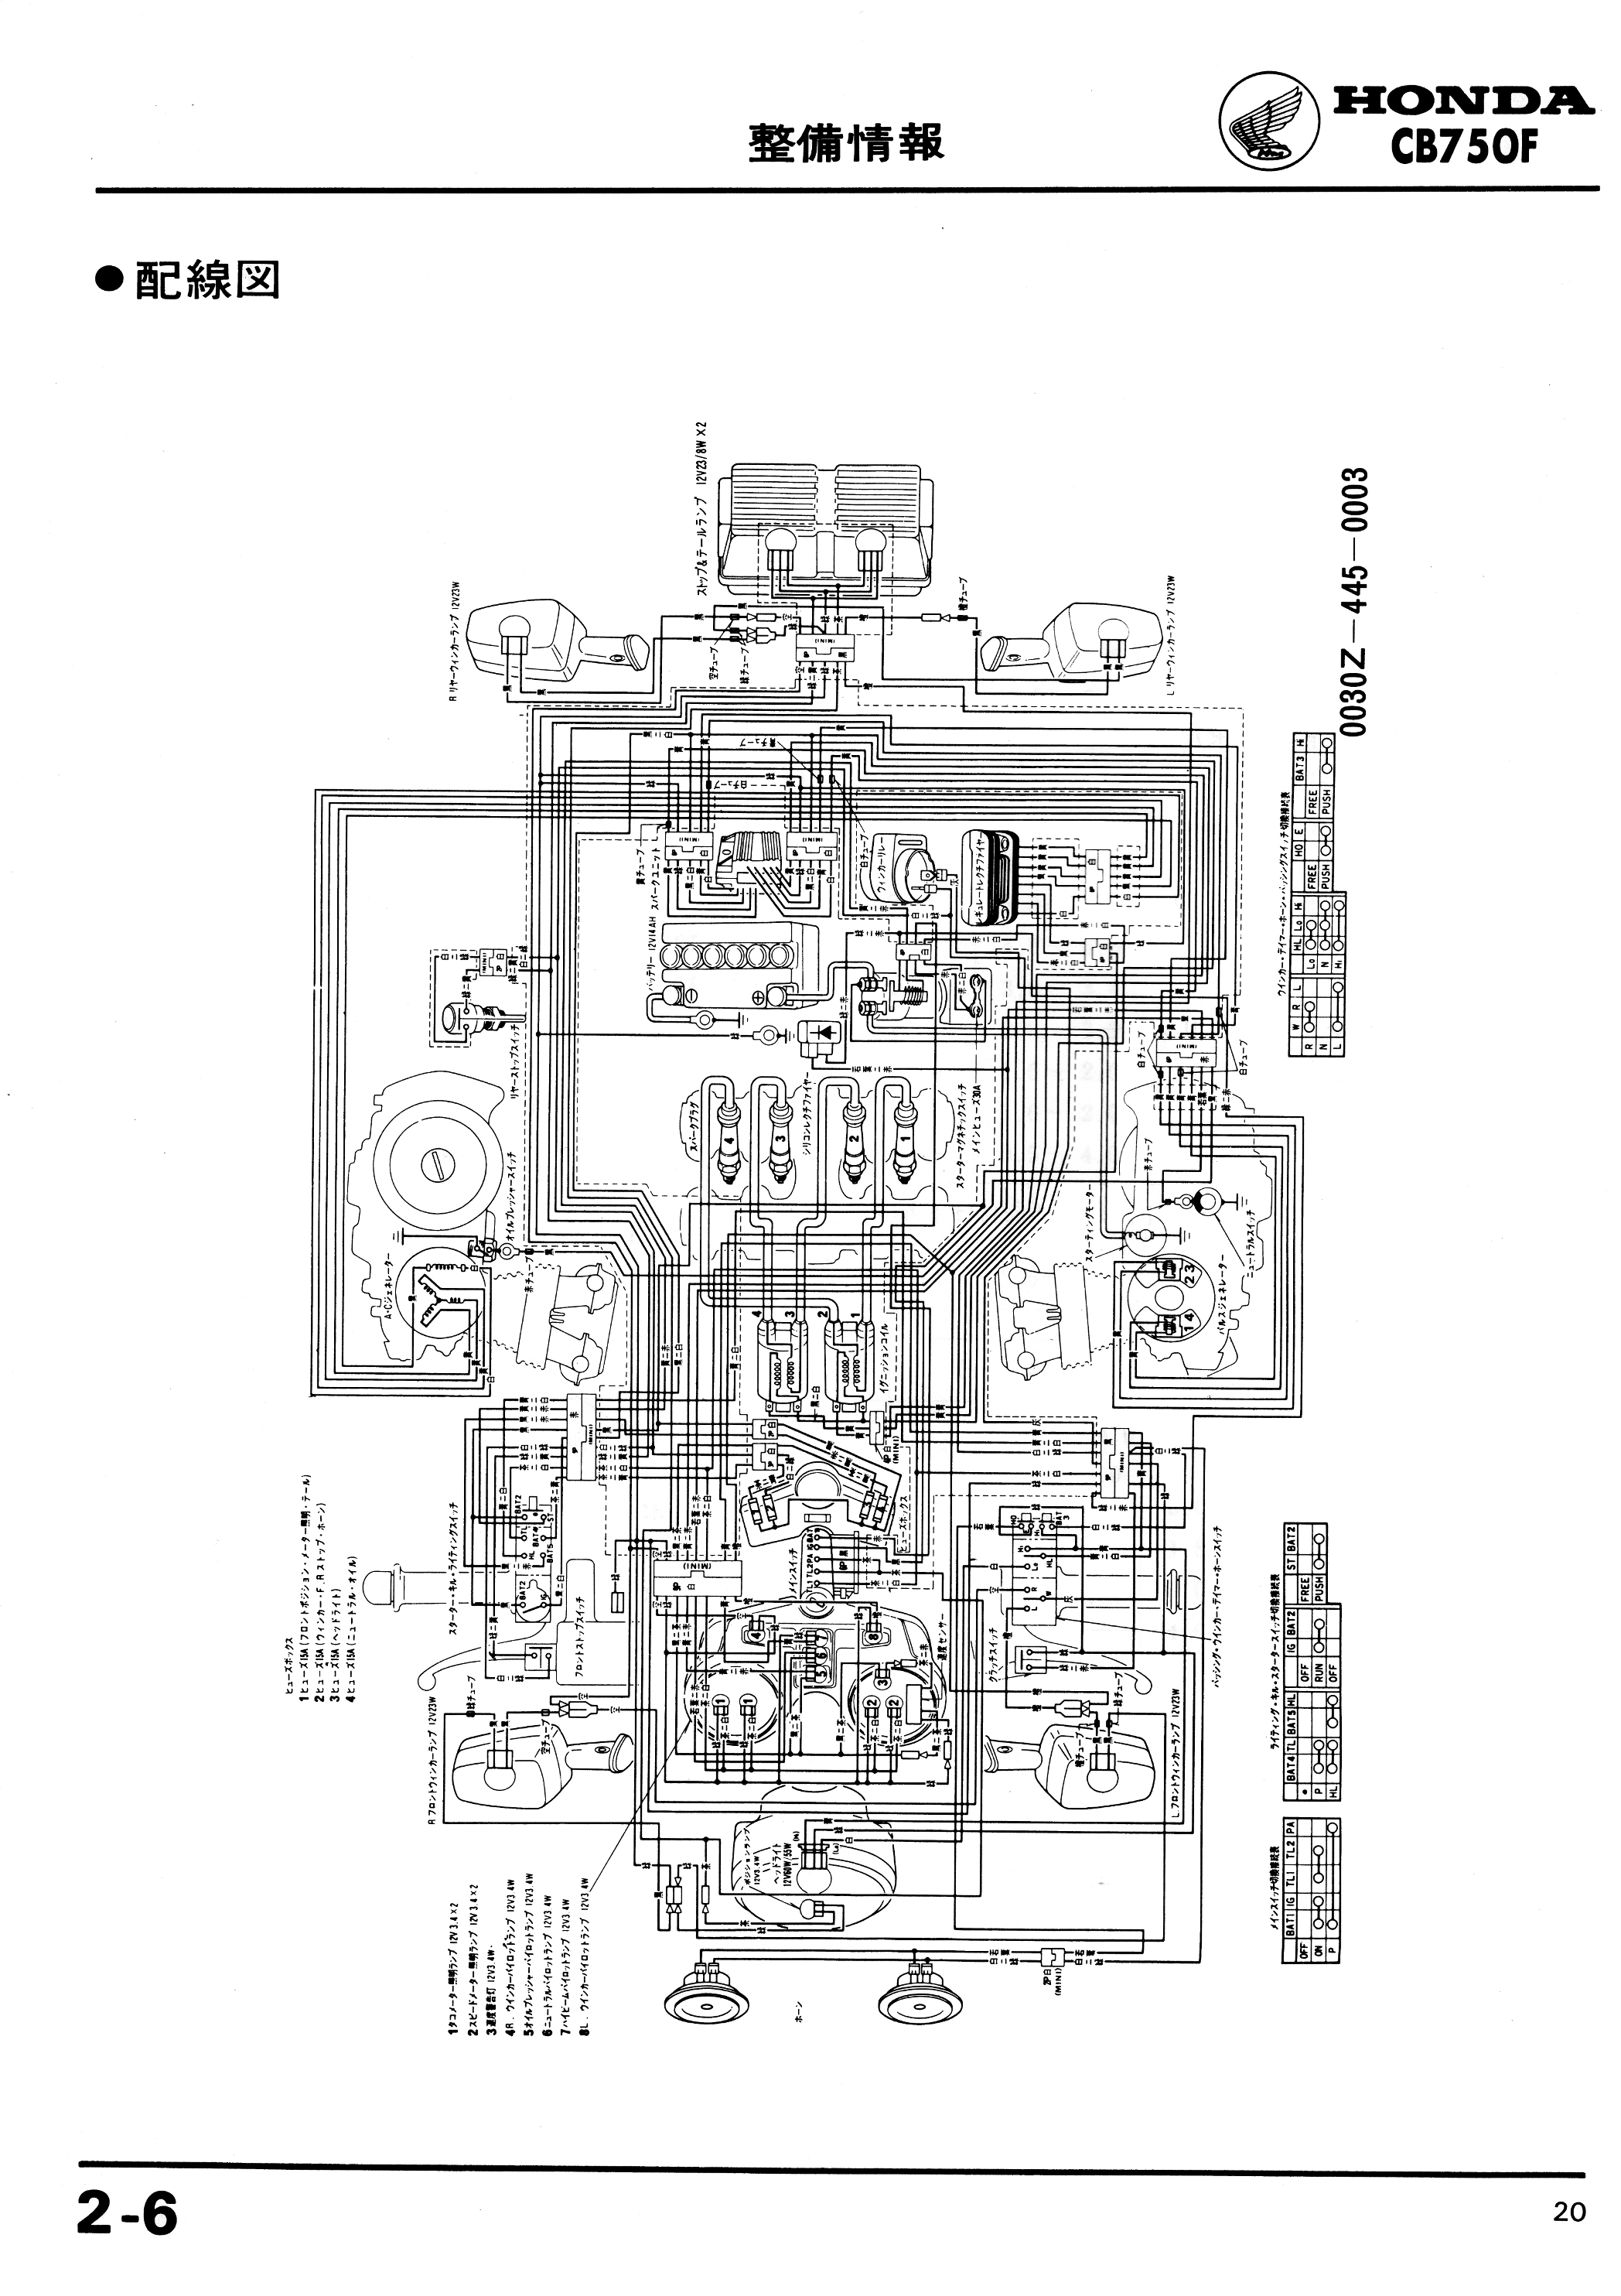 cb 750 k5 wiring diagram 1975 honda cb750 parts diagram